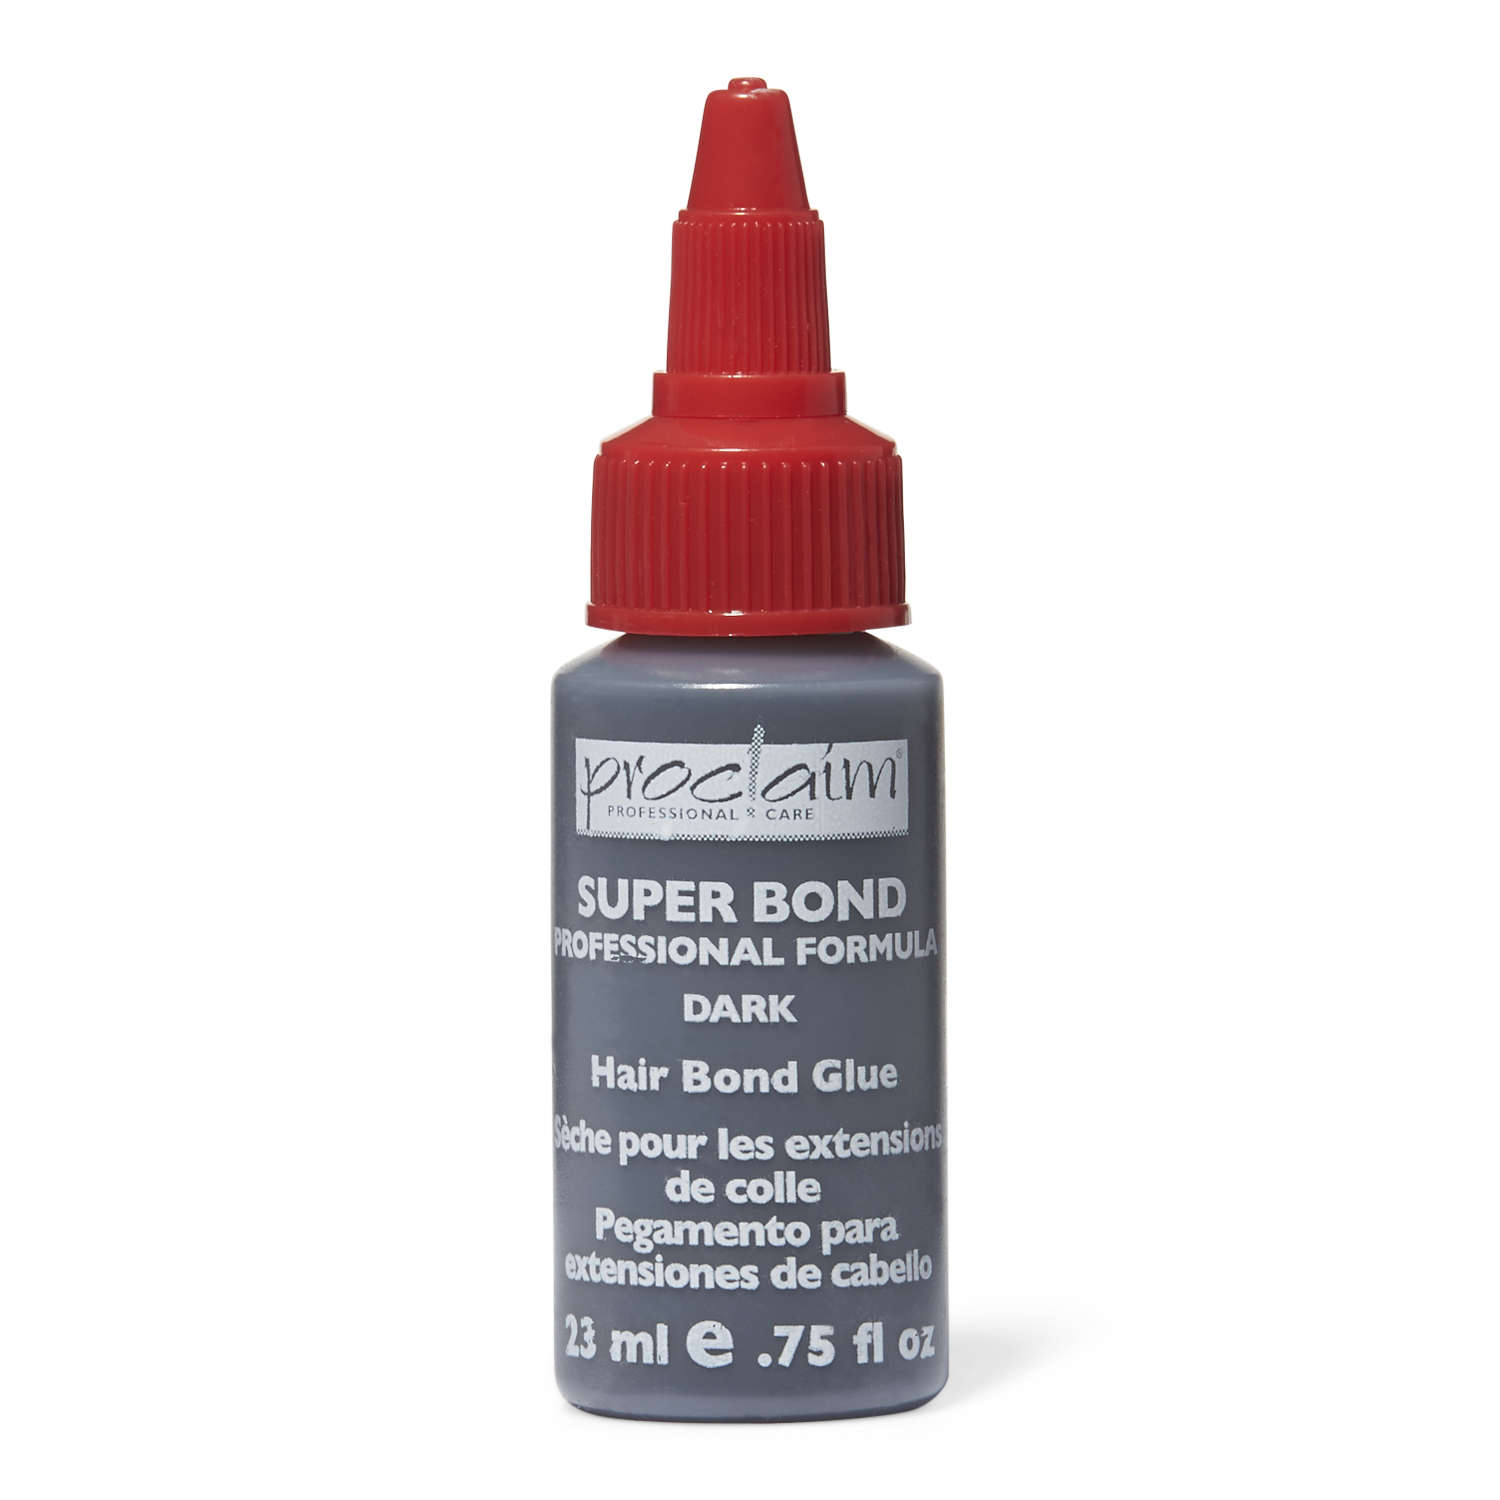 Proclaim super bond hair glue dark pmusecretfo Image collections